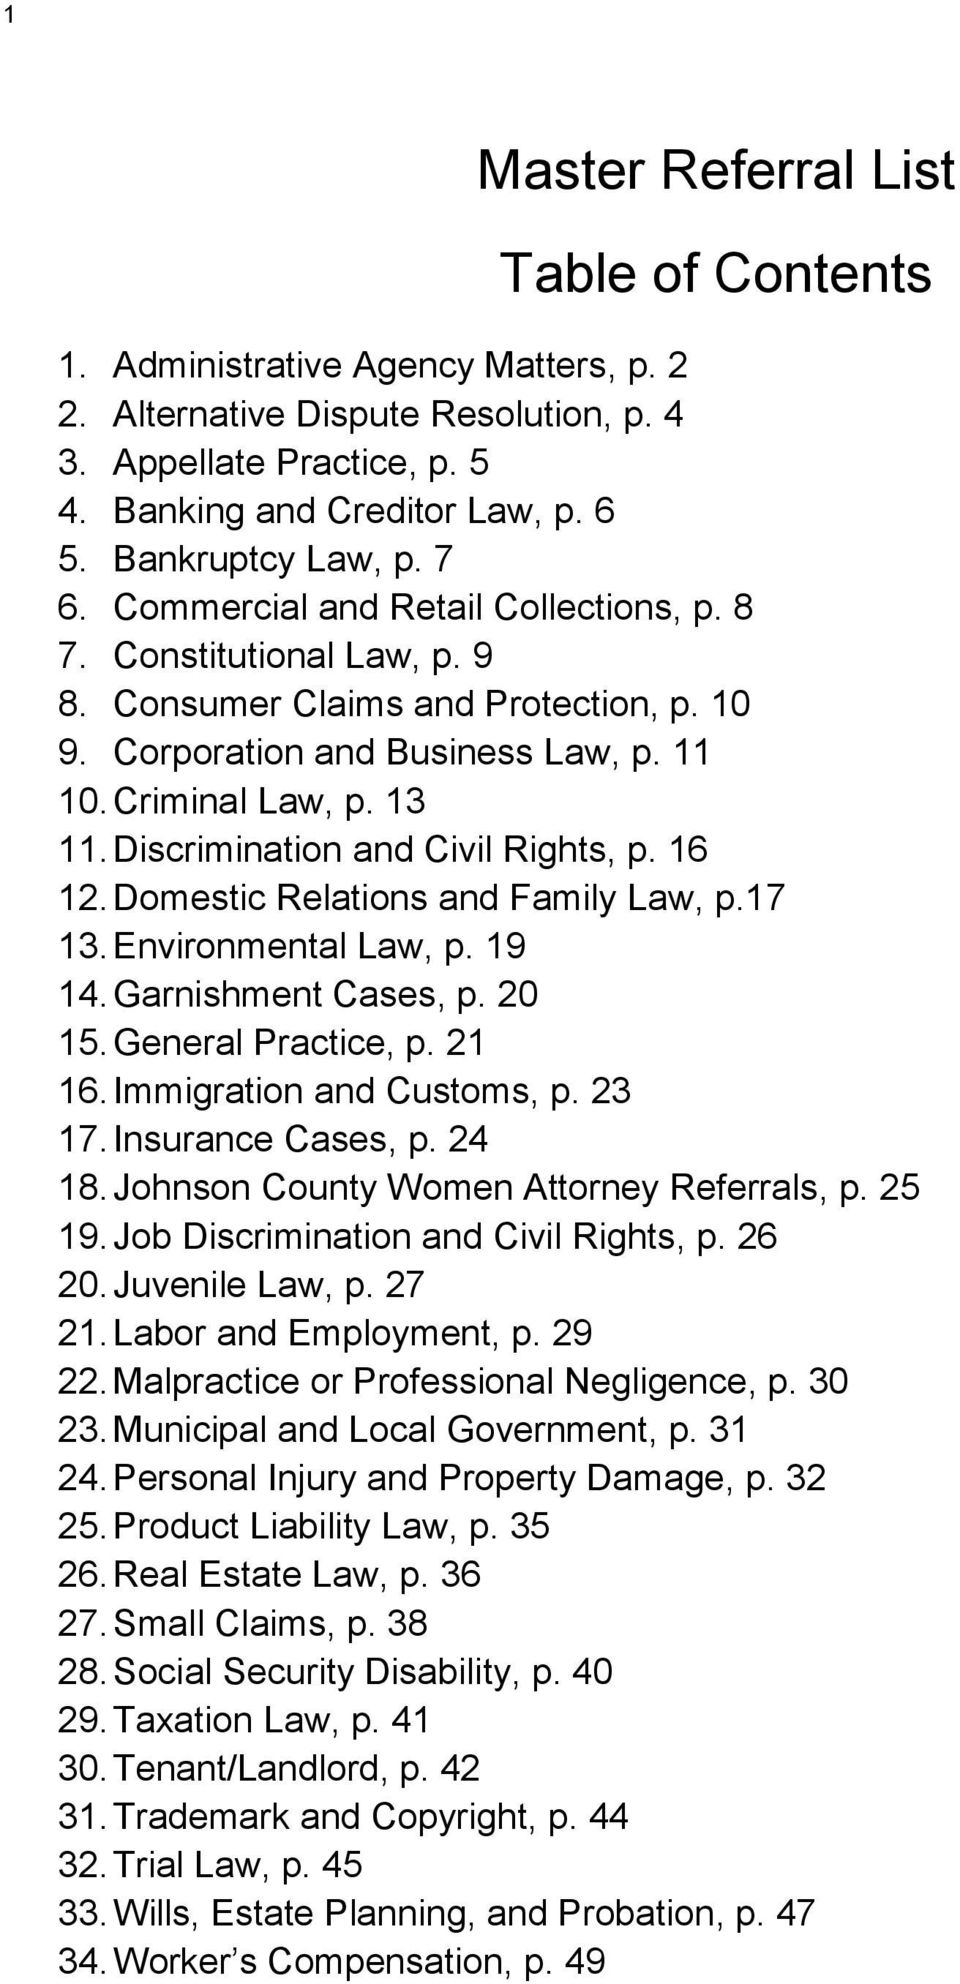 Discrimination and Civil Rights, p. 16 12. Domestic Relations and Family Law, p.17 13. Environmental Law, p. 19 14. Garnishment Cases, p. 20 15. General Practice, p. 21 16. Immigration and Customs, p.